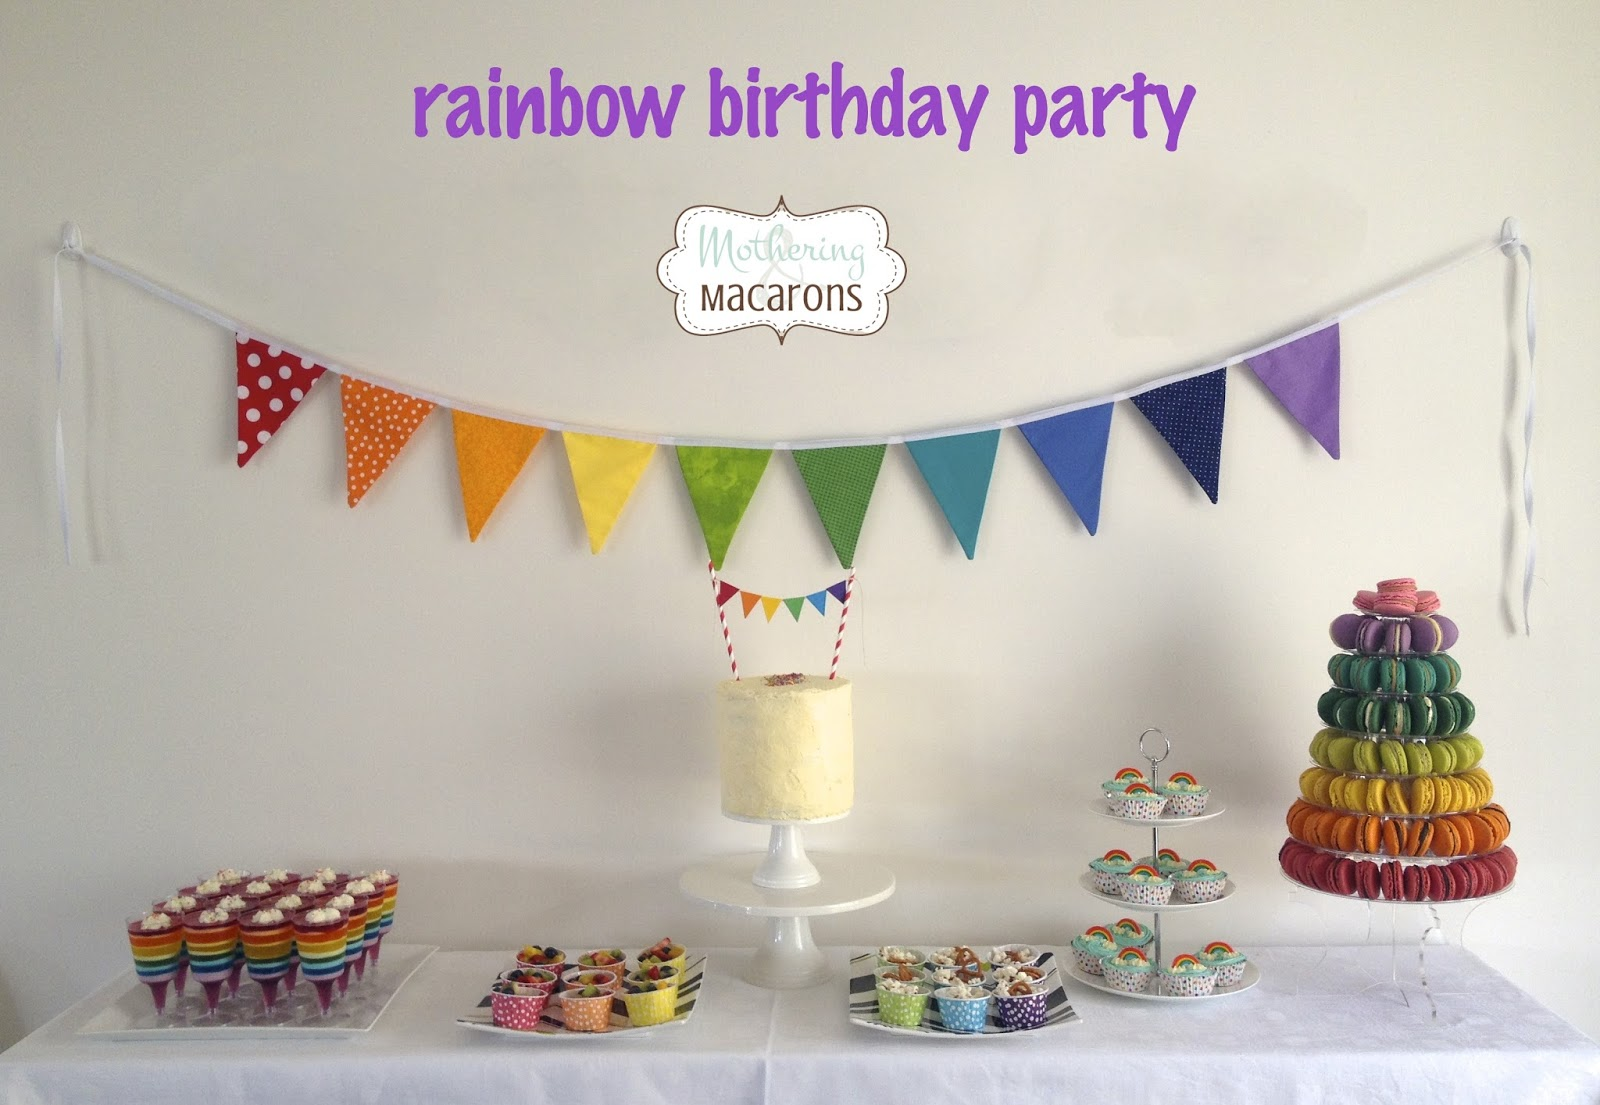 Mothering and Macarons: A Rainbow Birthday Party